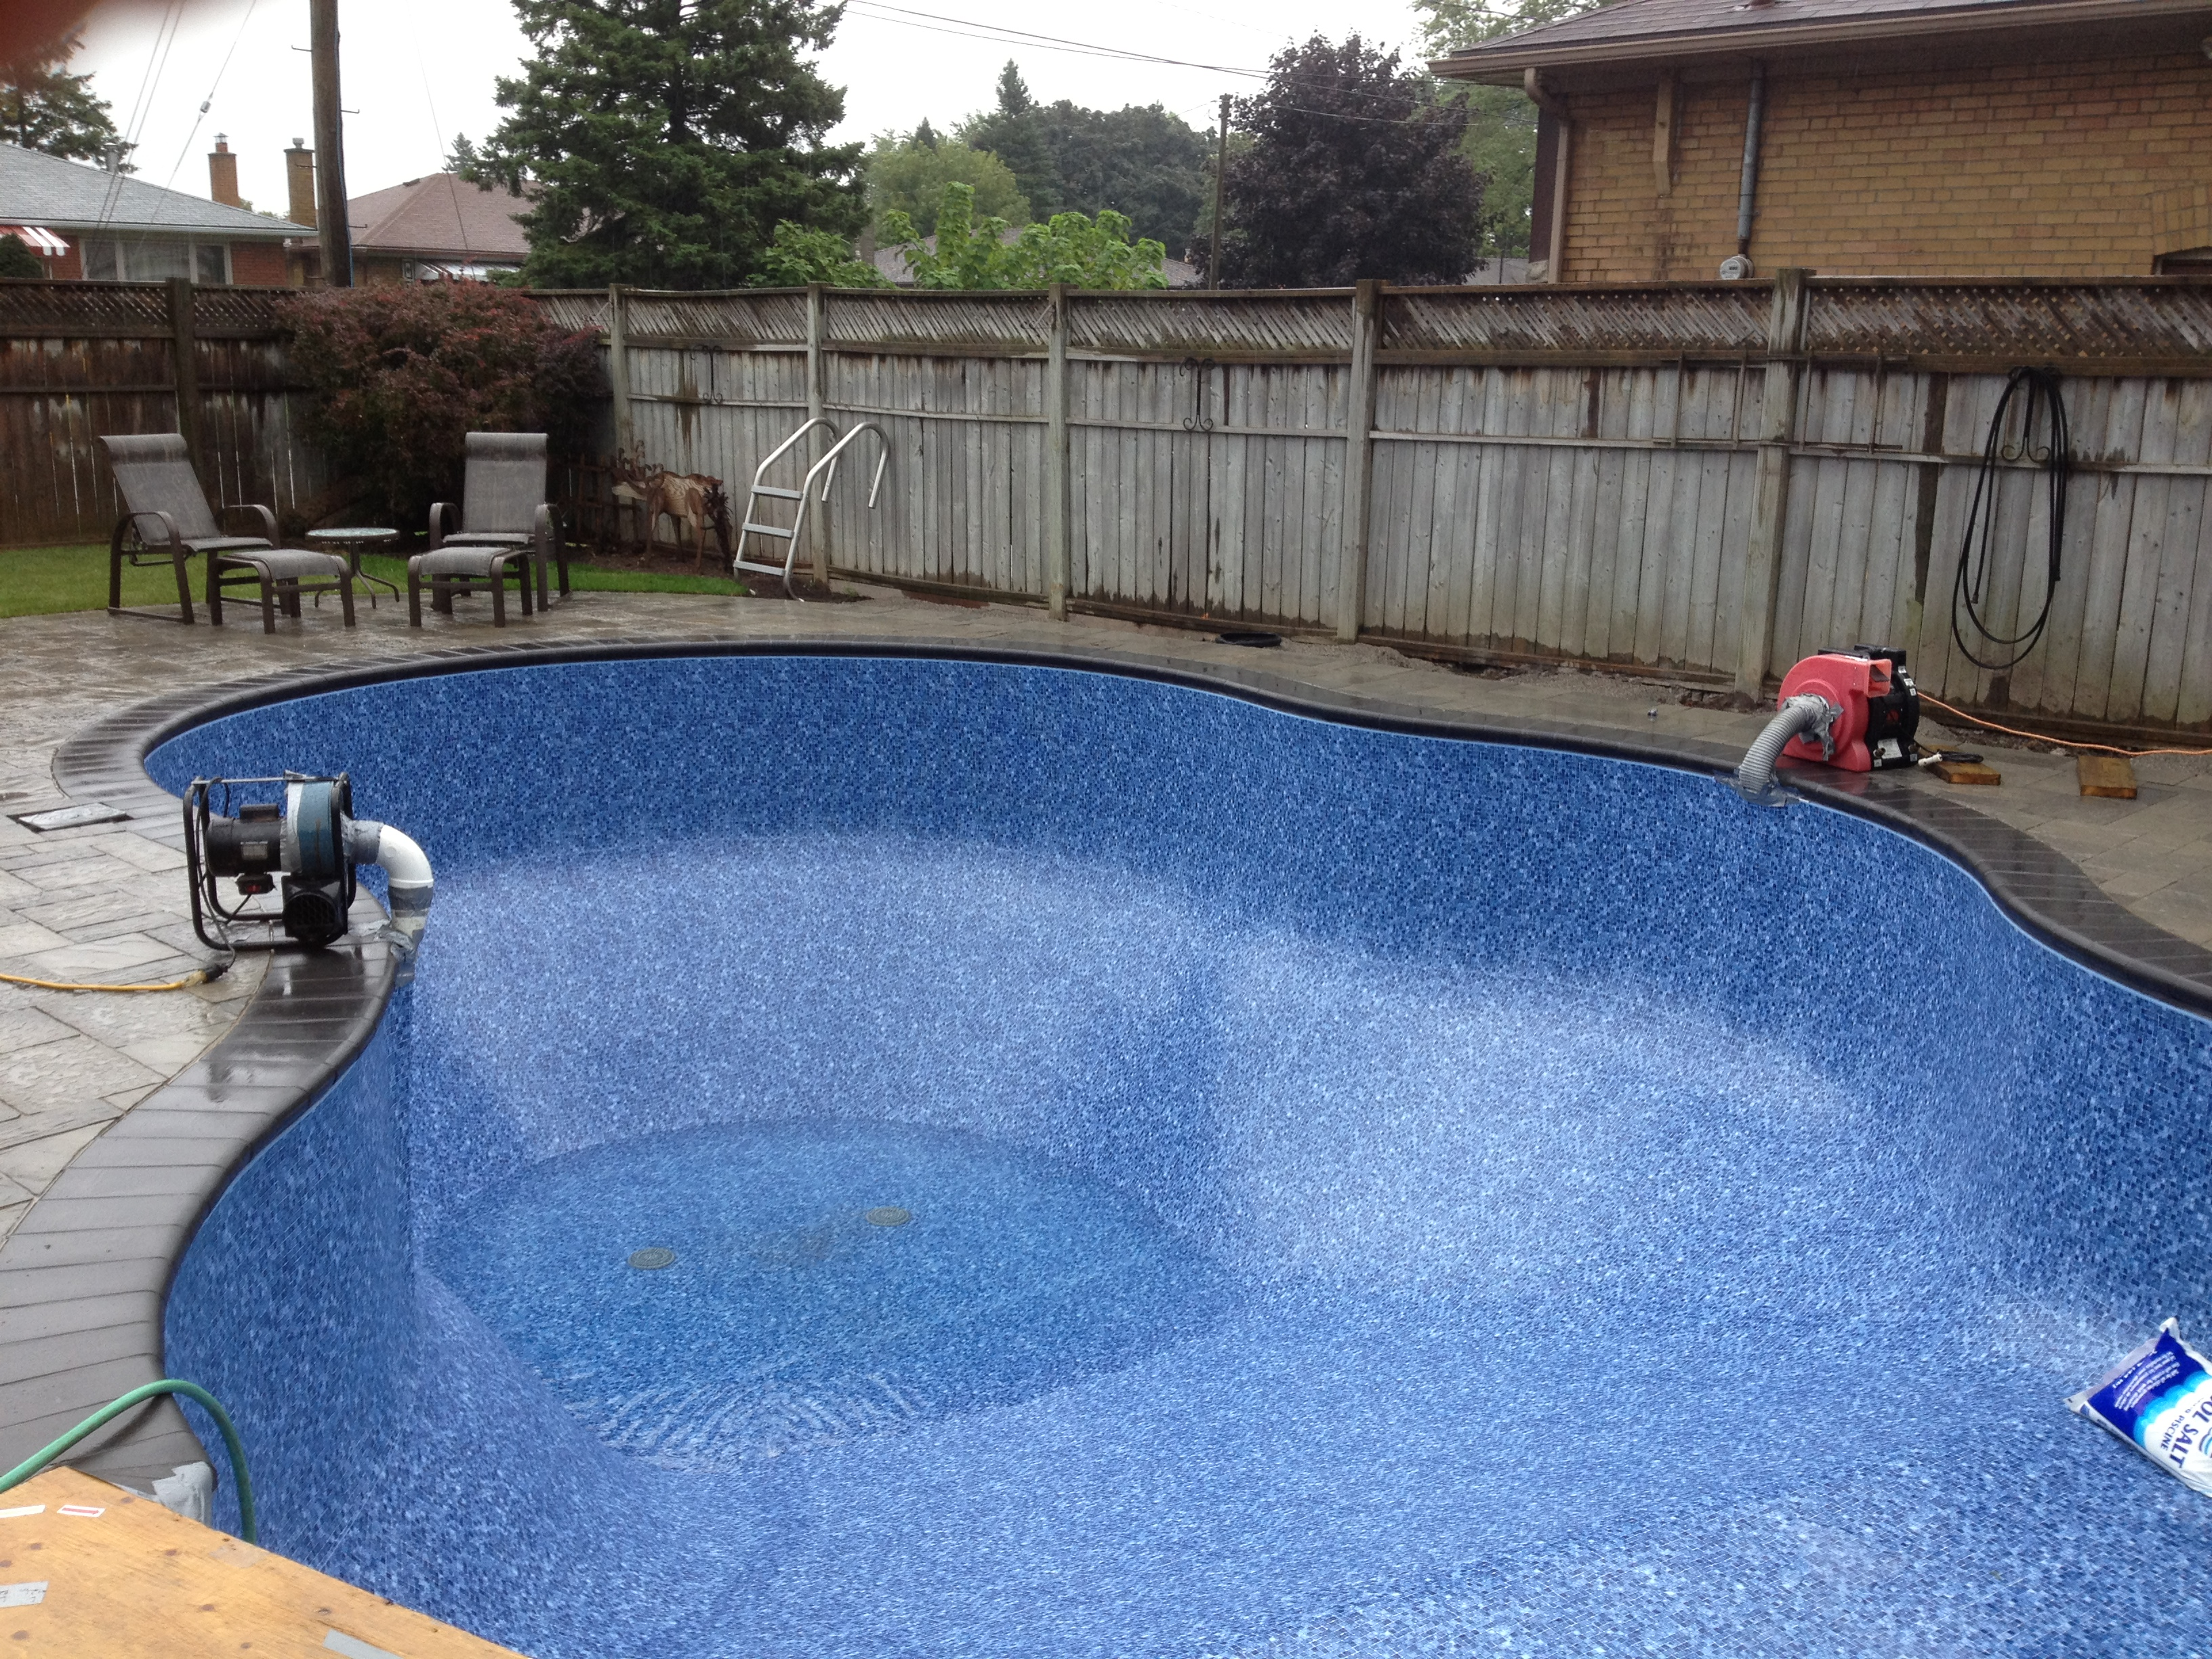 New Liner Going In.JPG